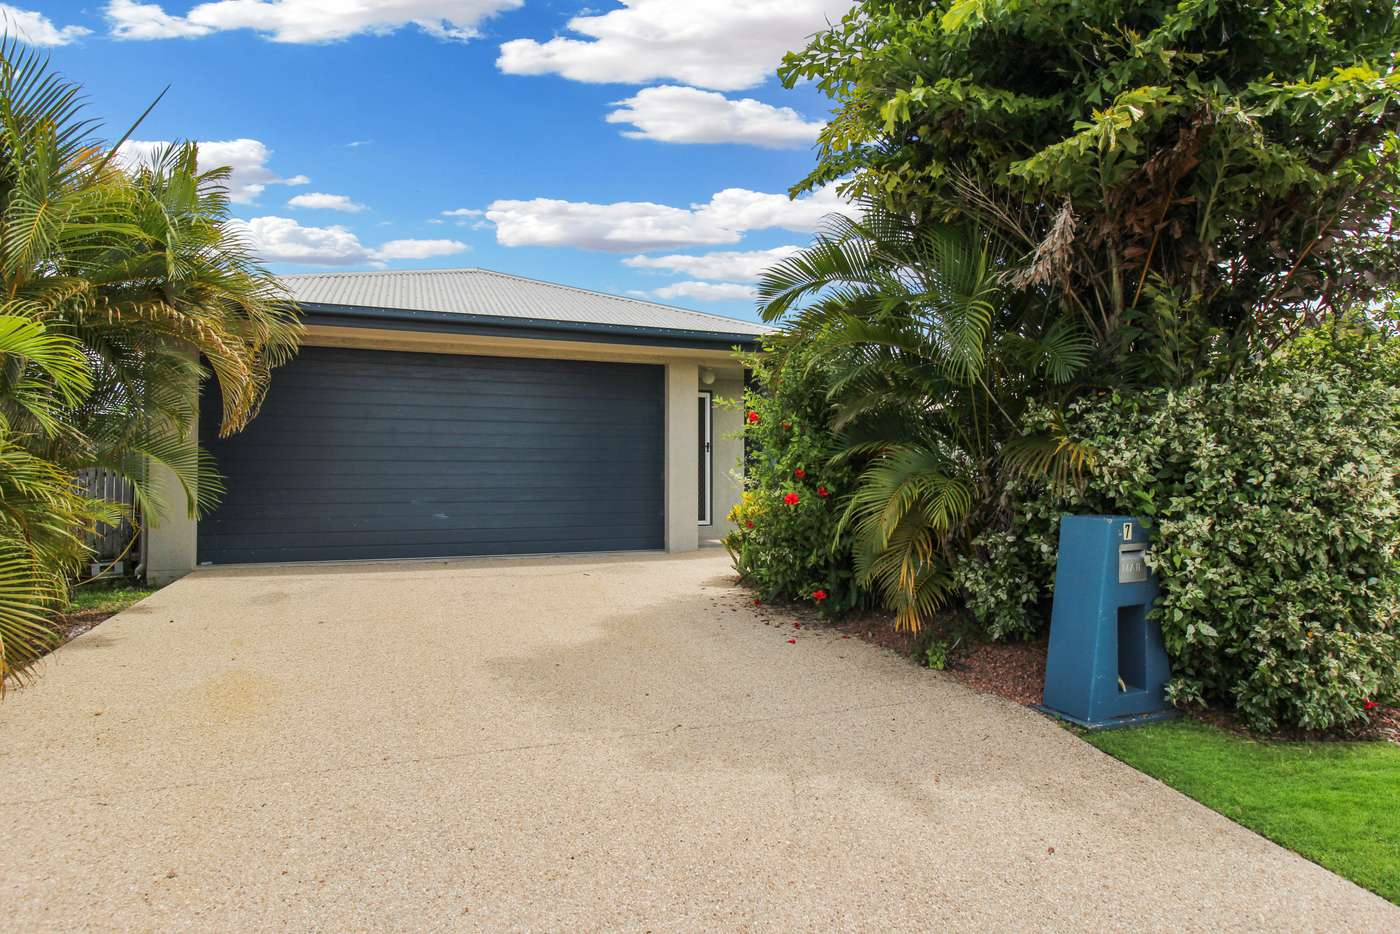 Main view of Homely house listing, 74 Summerland Drive, Deeragun QLD 4818